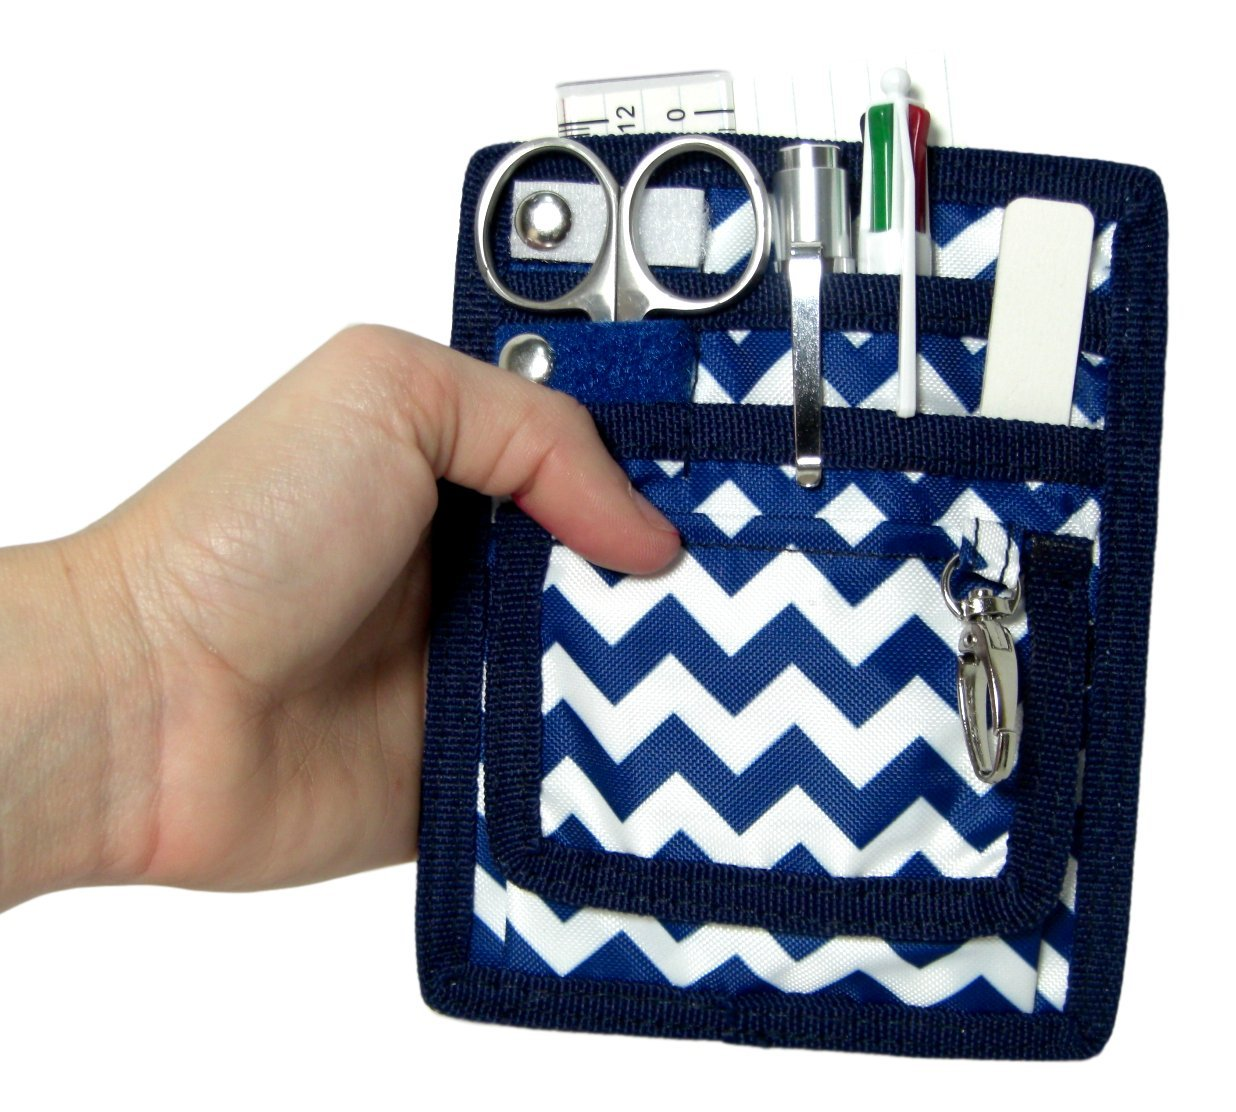 Perfect Gift For Nurses 6 Piece Protective Lab Coat Pocket Organizer Kit has Popular Sky Blue Chevron Pattern Youre Sure to Love/ Students /& You!